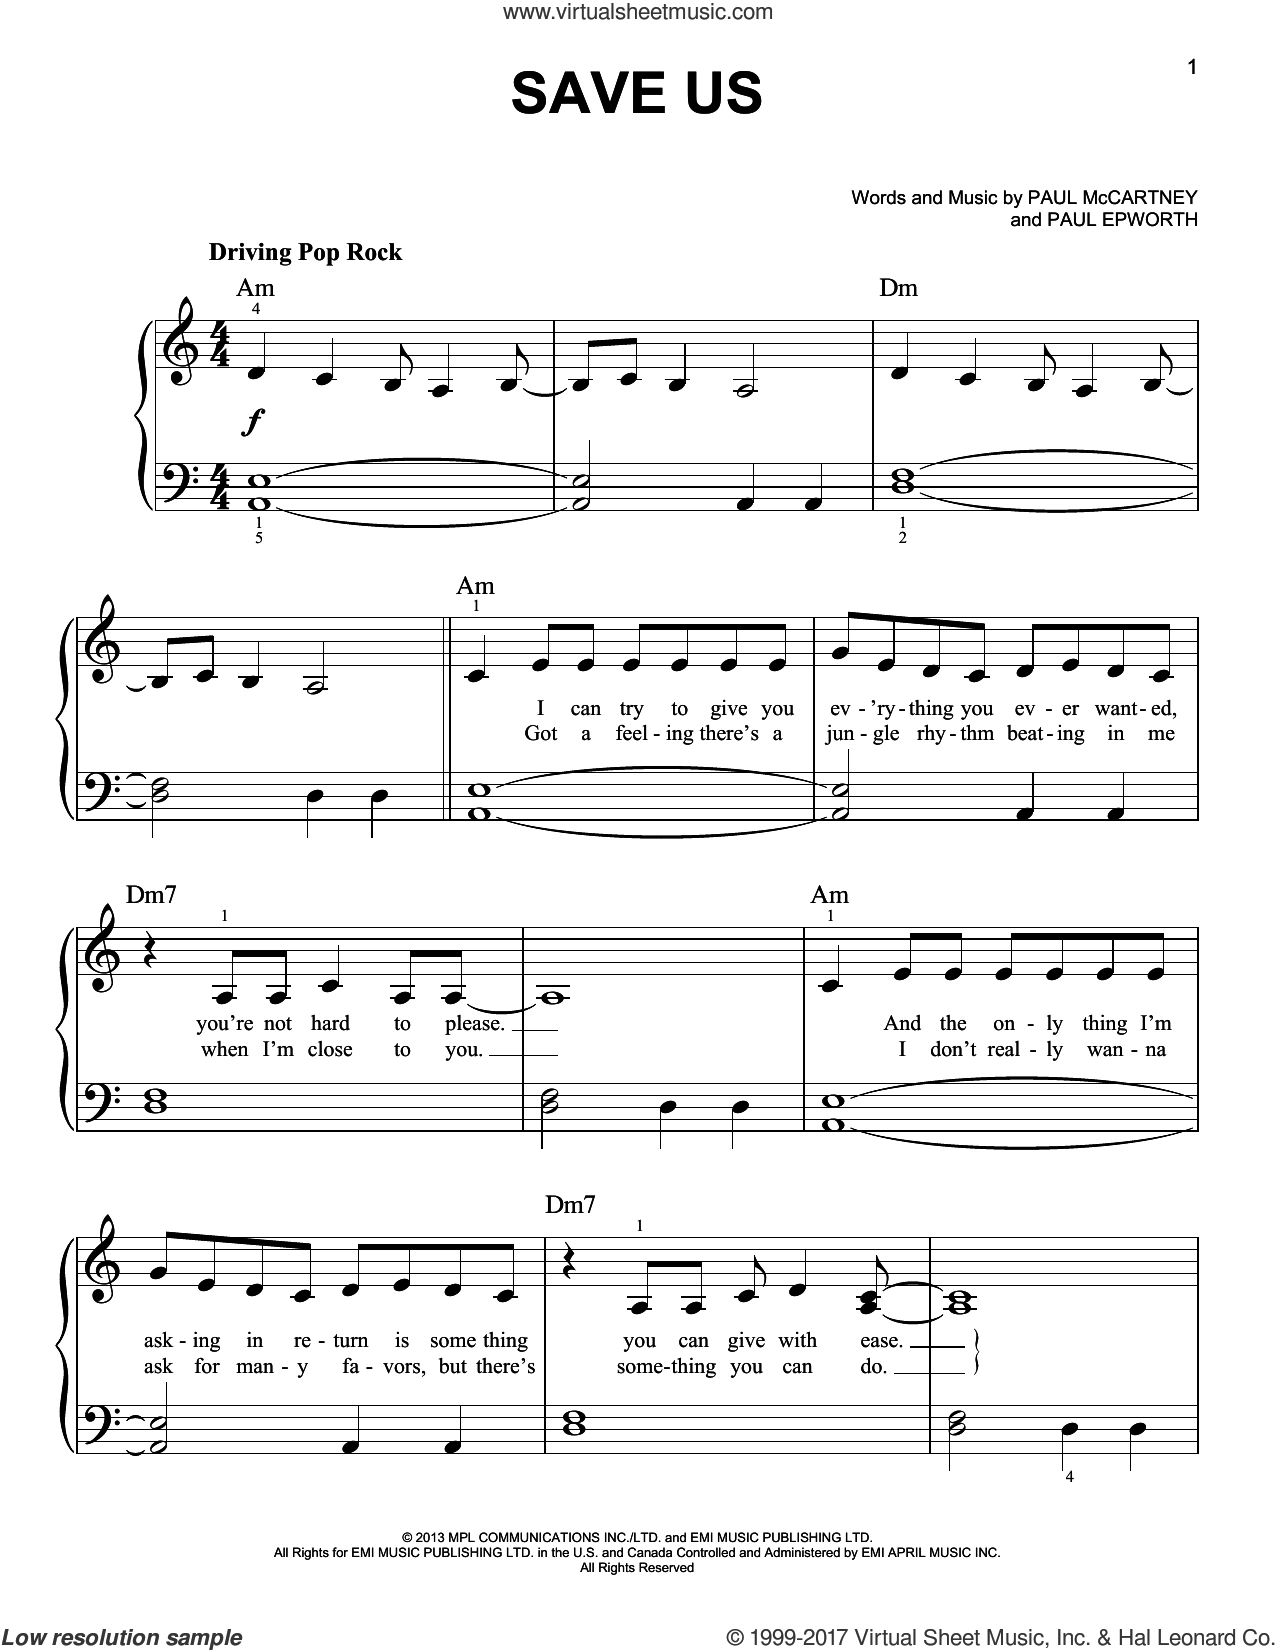 Save Us sheet music for piano solo by Paul McCartney and Paul Epworth, easy piano. Score Image Preview.